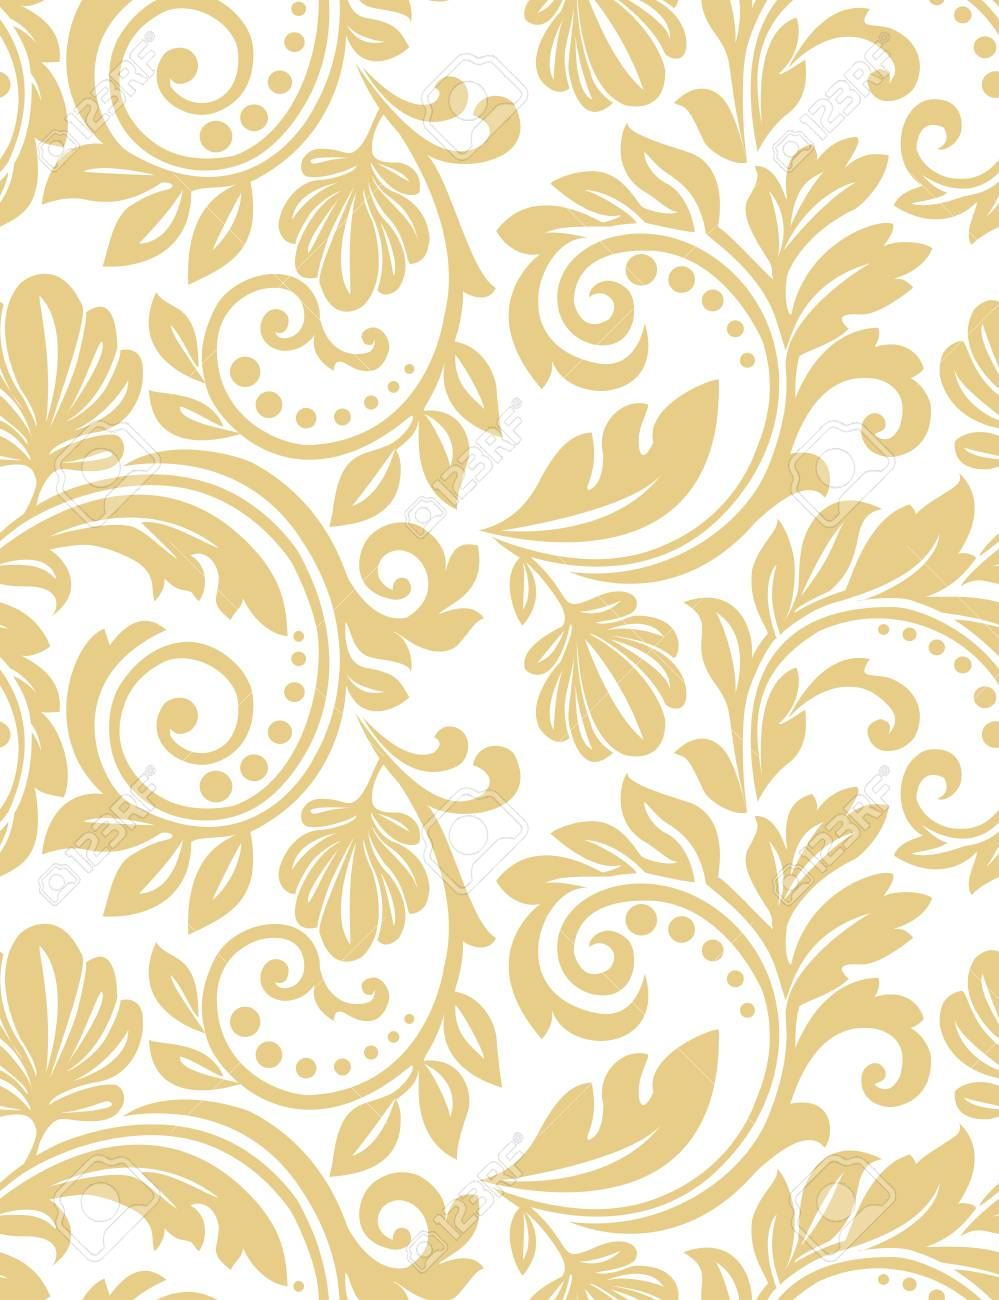 Floral Pattern Wallpaper Baroque Damask Seamless Vector Background Royalty Free Cliparts Vectors And Stock Illustration Image 98013947